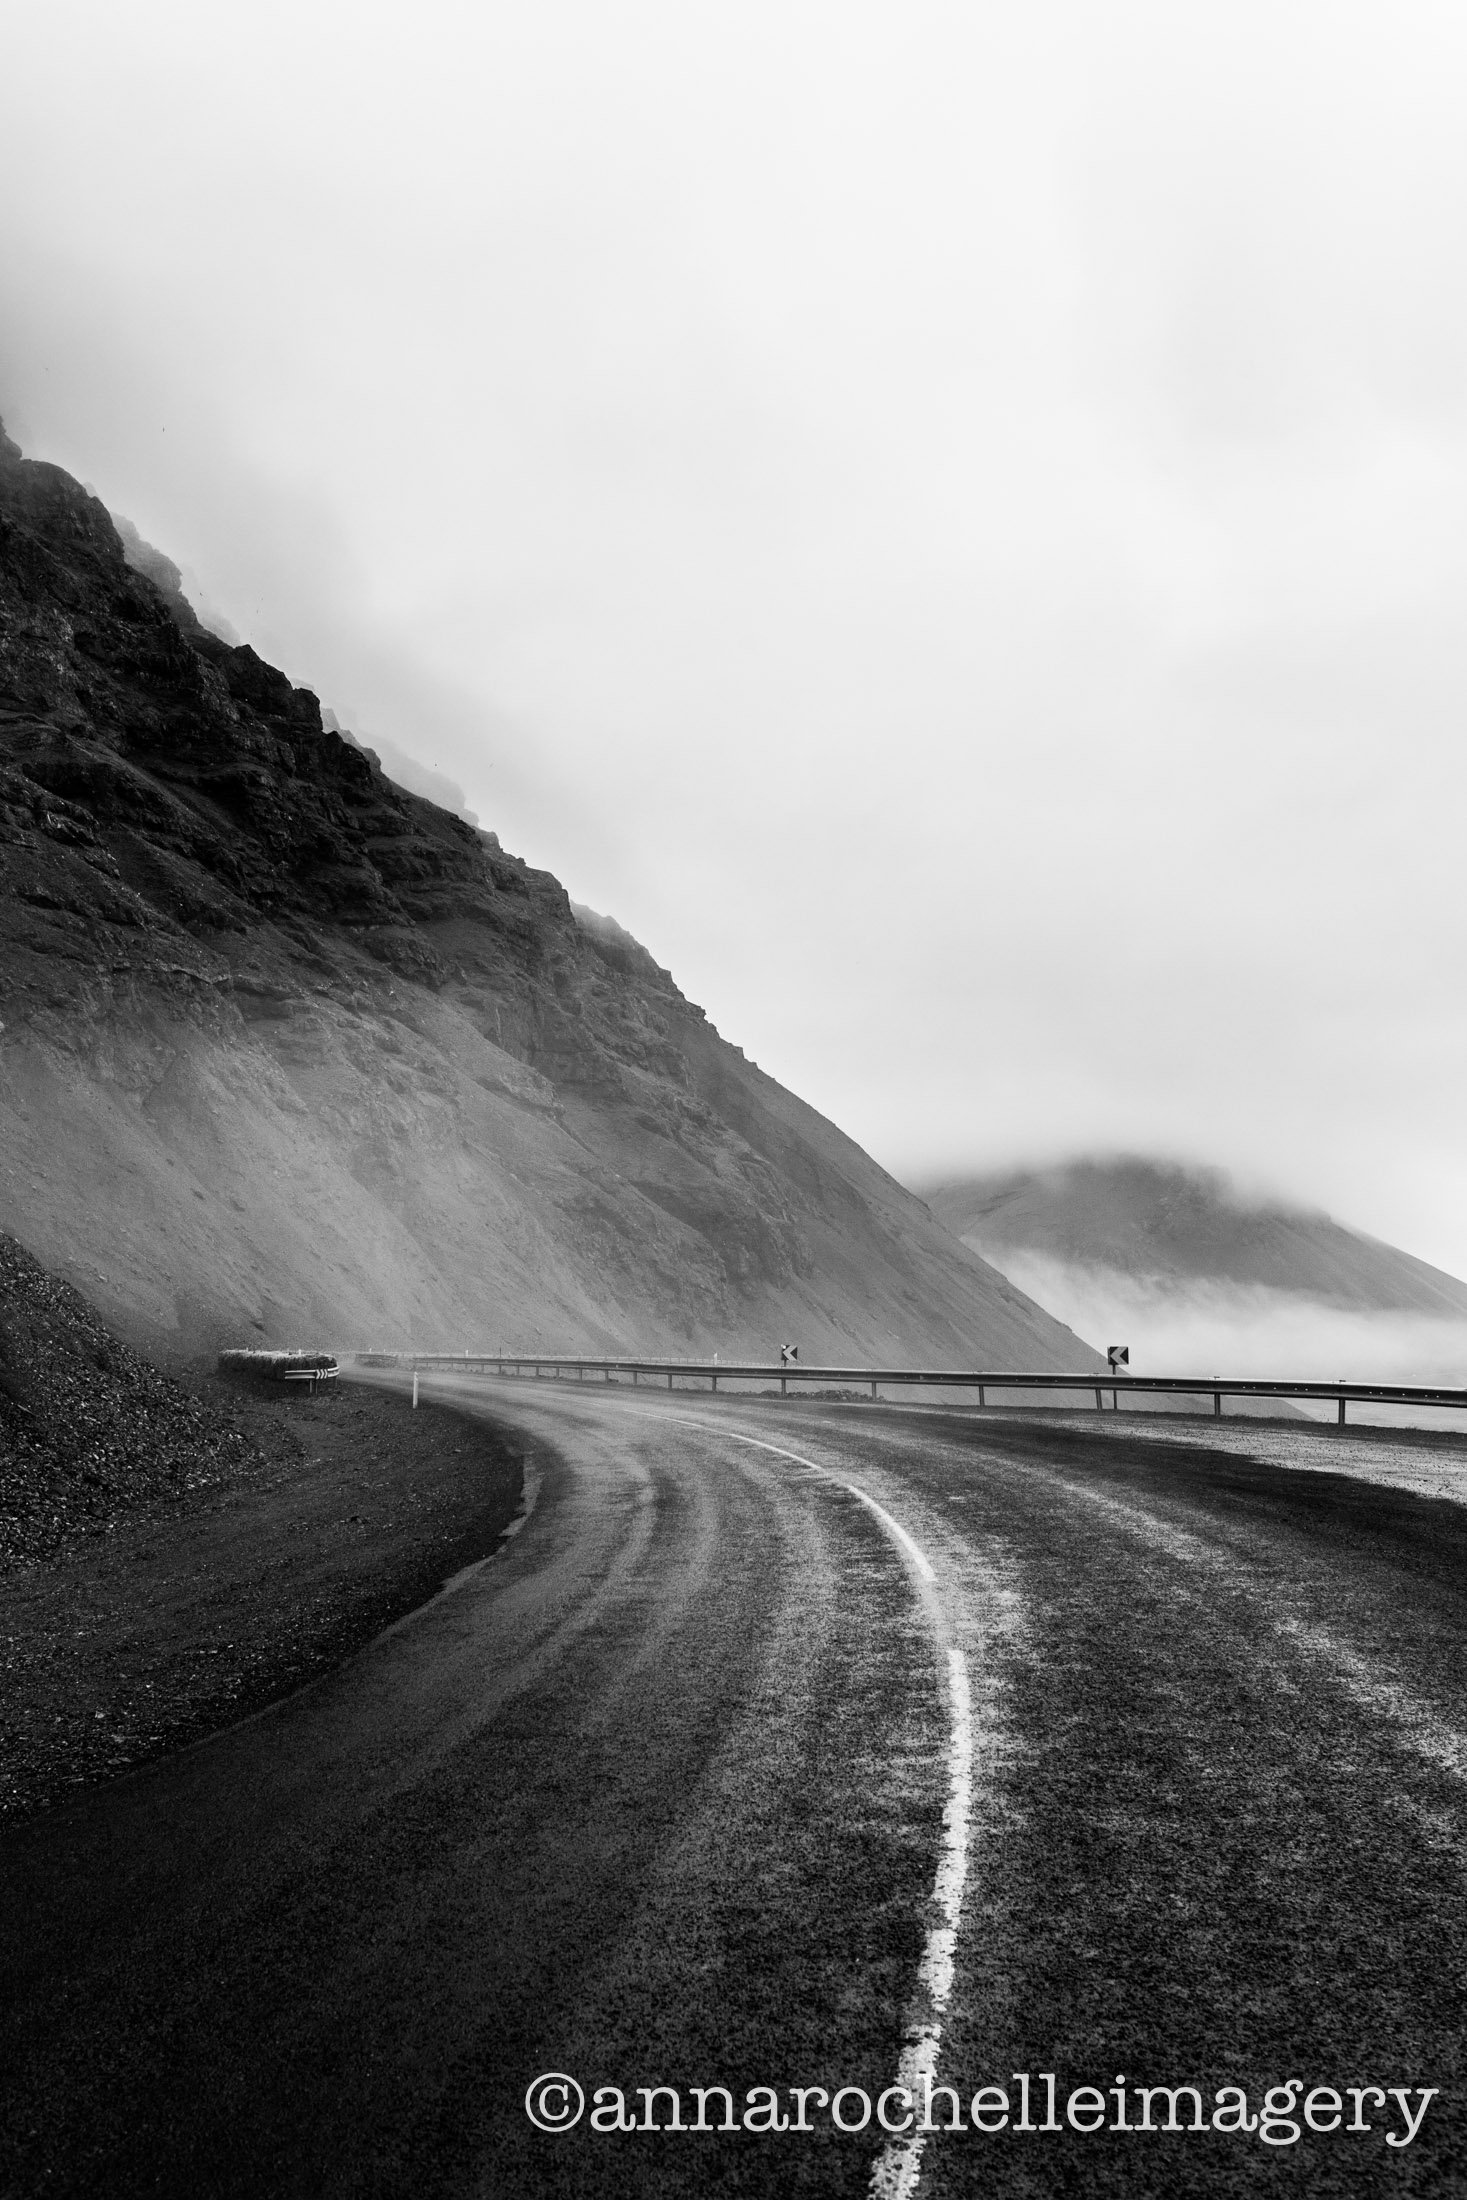 fog-road-strom-summer-iceland-roadtrip.jpg